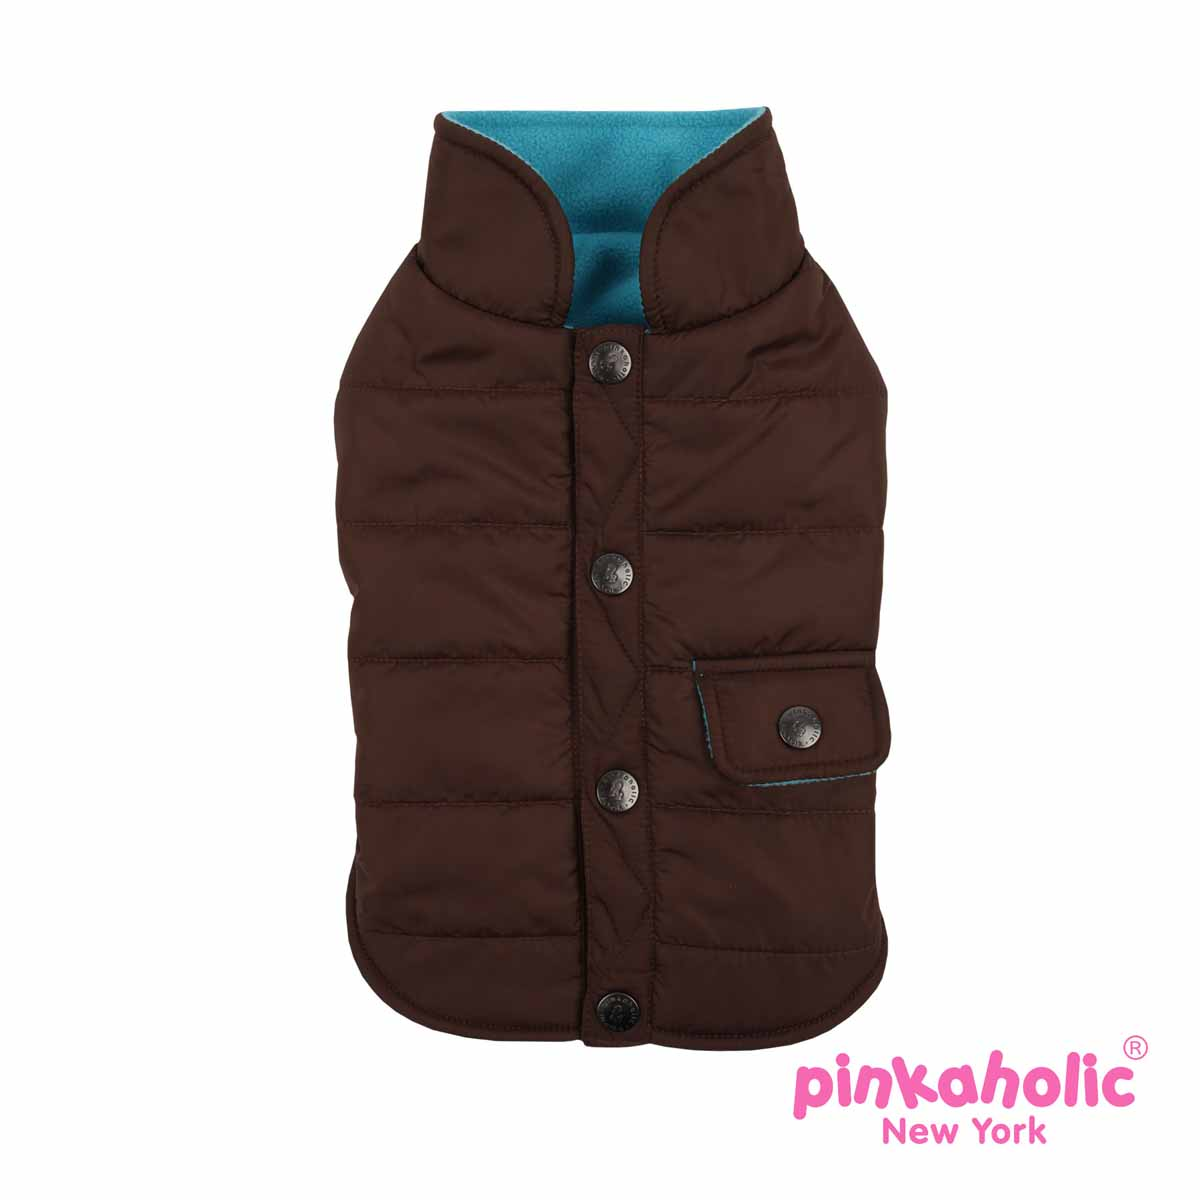 Bravado Quilted Dog Vest by Pinkaholic - Brown